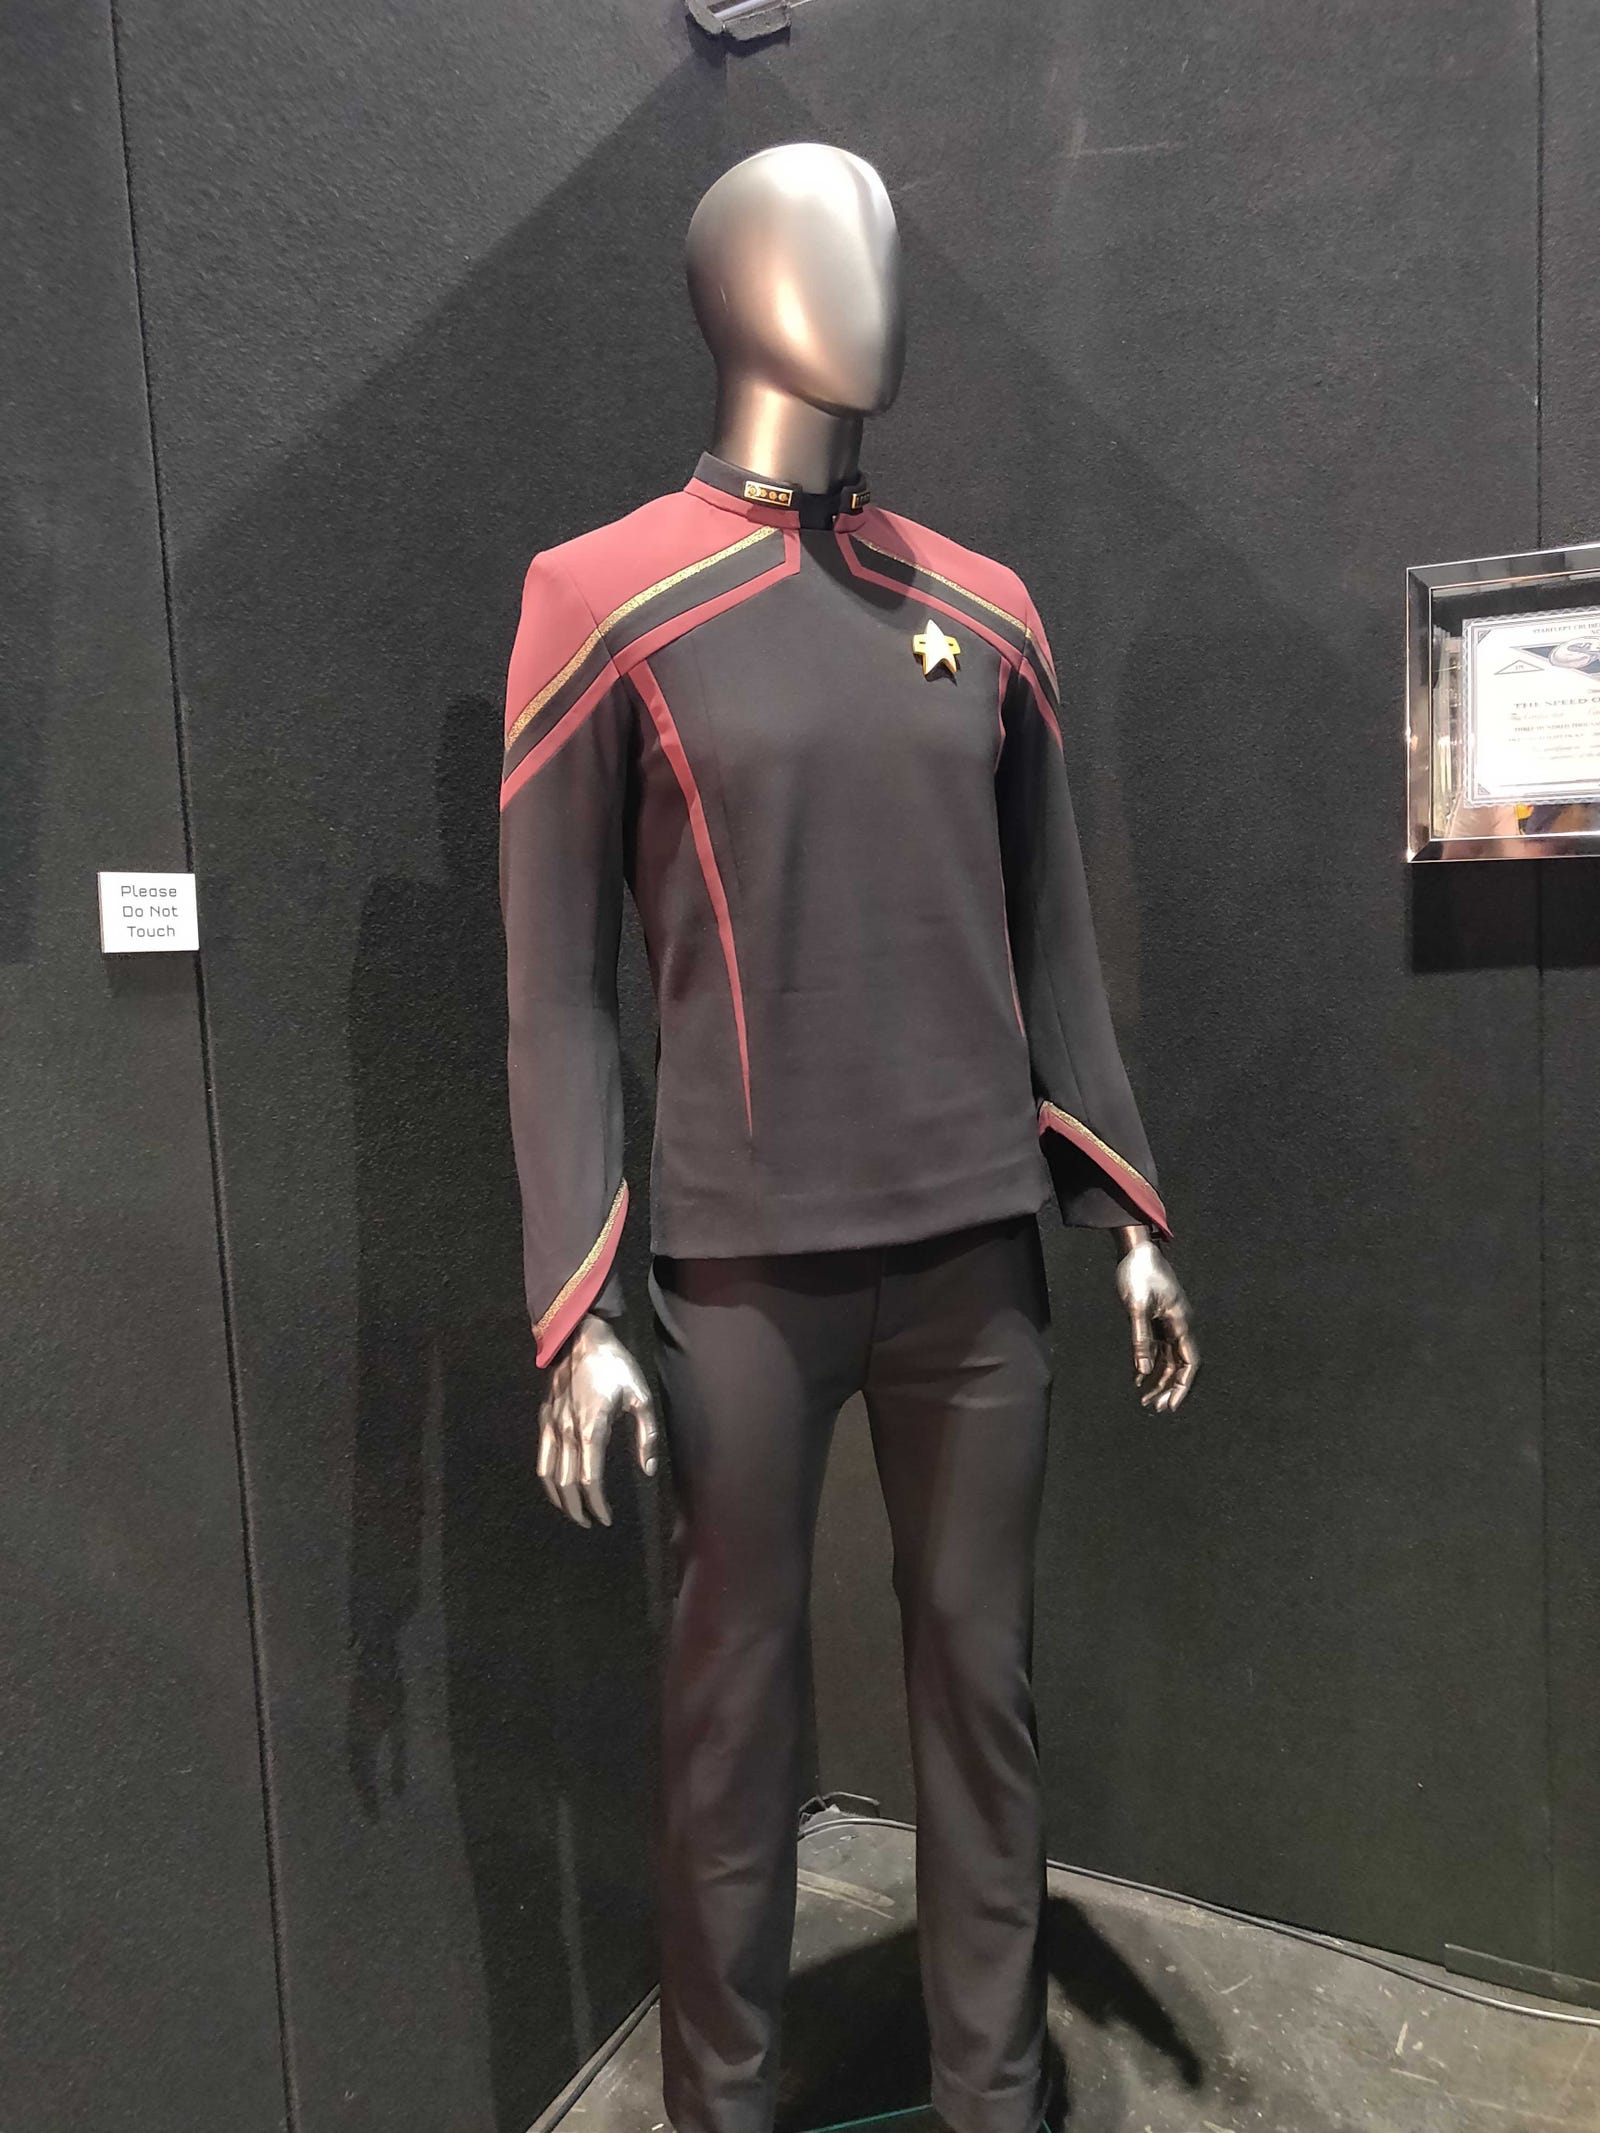 More looks at Admiral Picard's uniform.